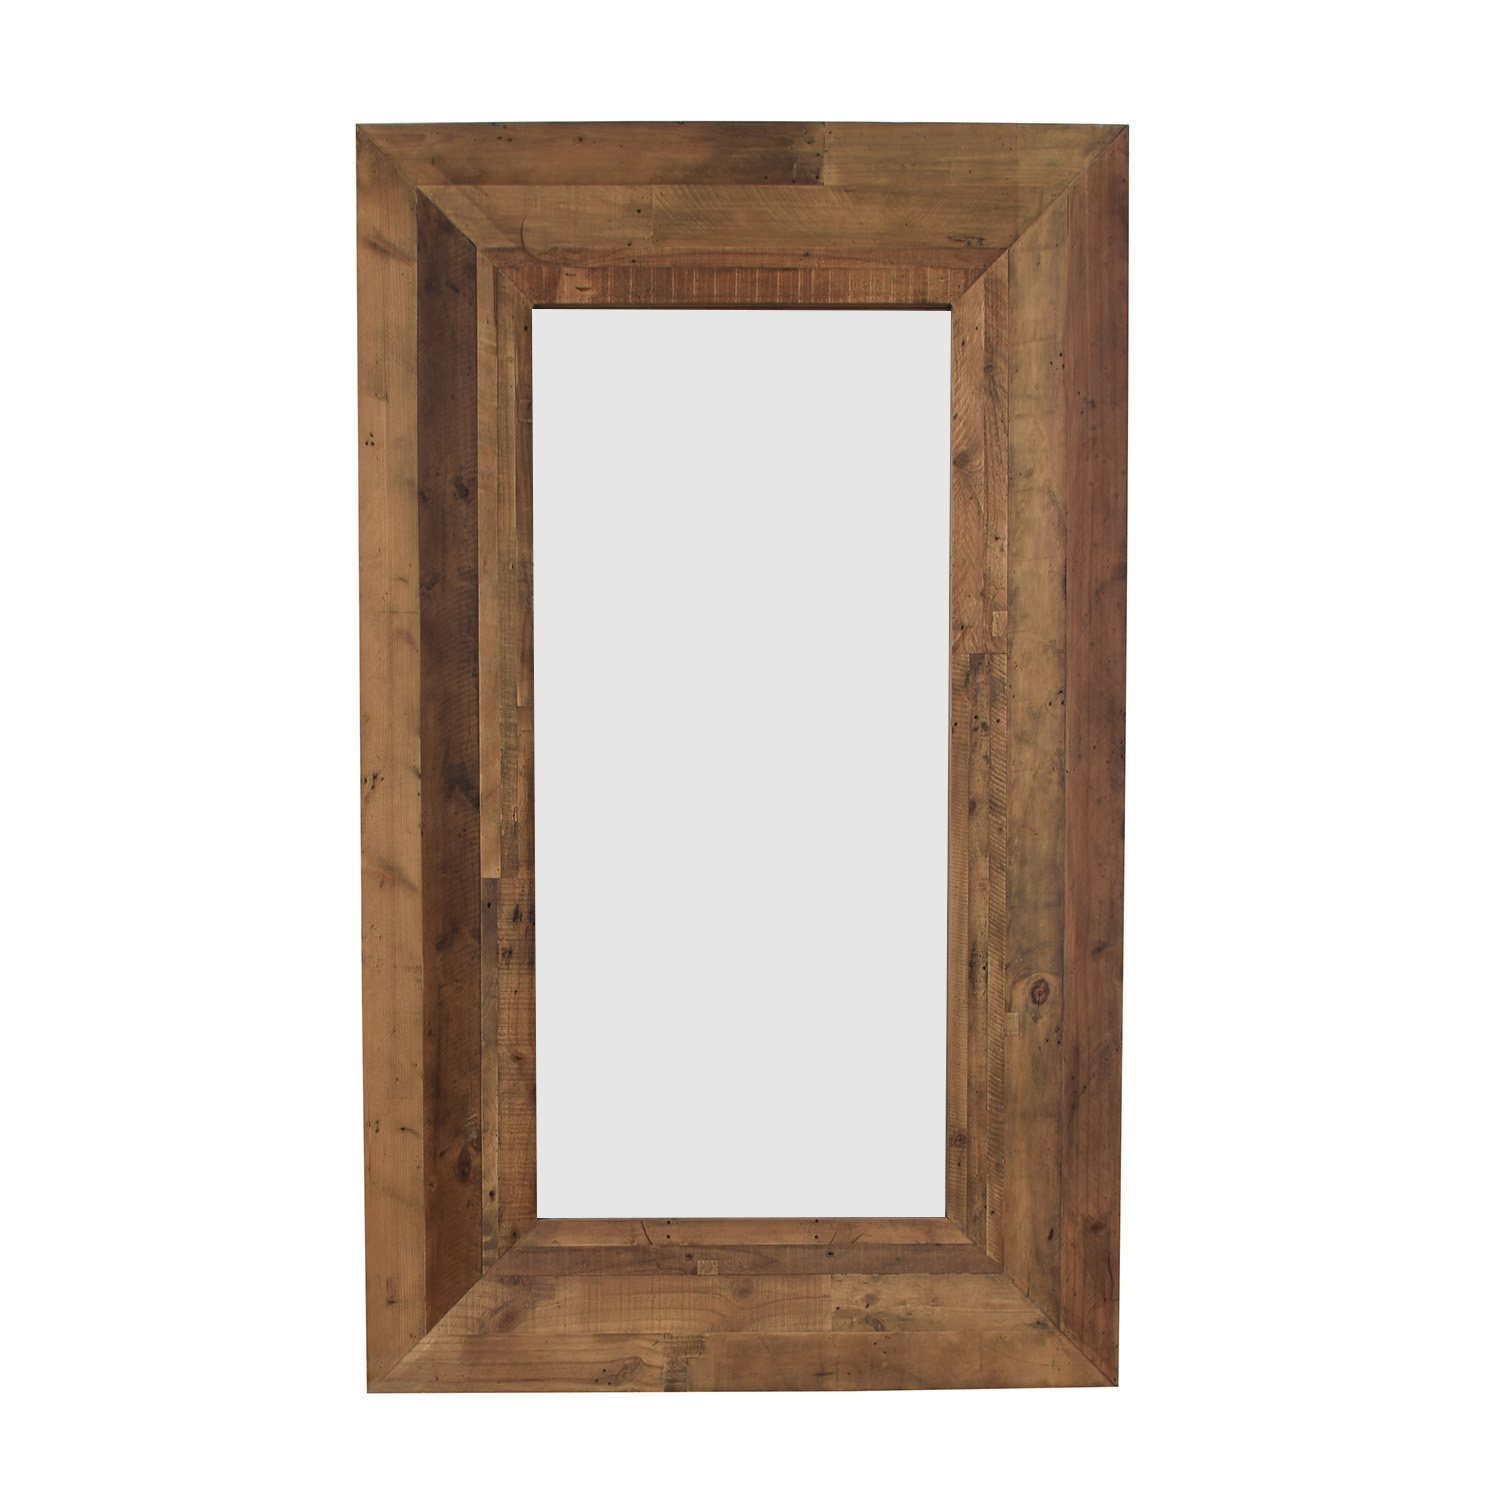 ABC Carpet & Home ABC Carpet & Home Oversized Wood Framed Floor Mirror nyc